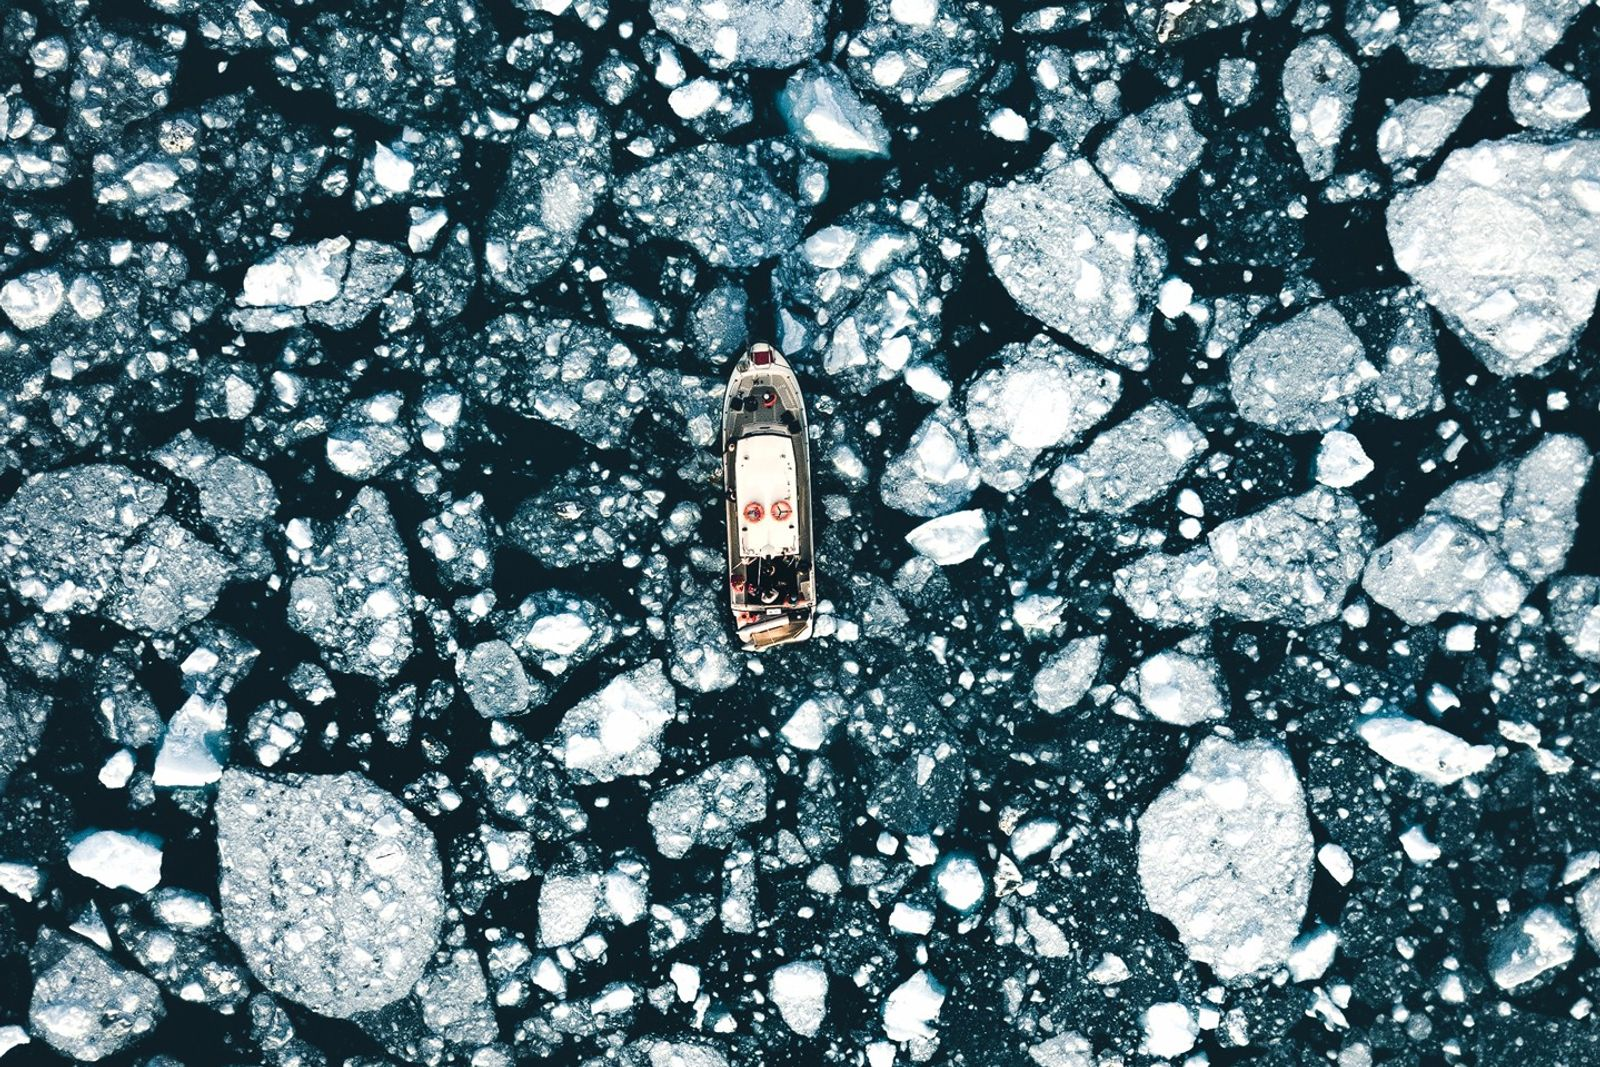 """Stian Klo: """"Our boat in the midst of the ice breaking off from the active Eqi ..."""